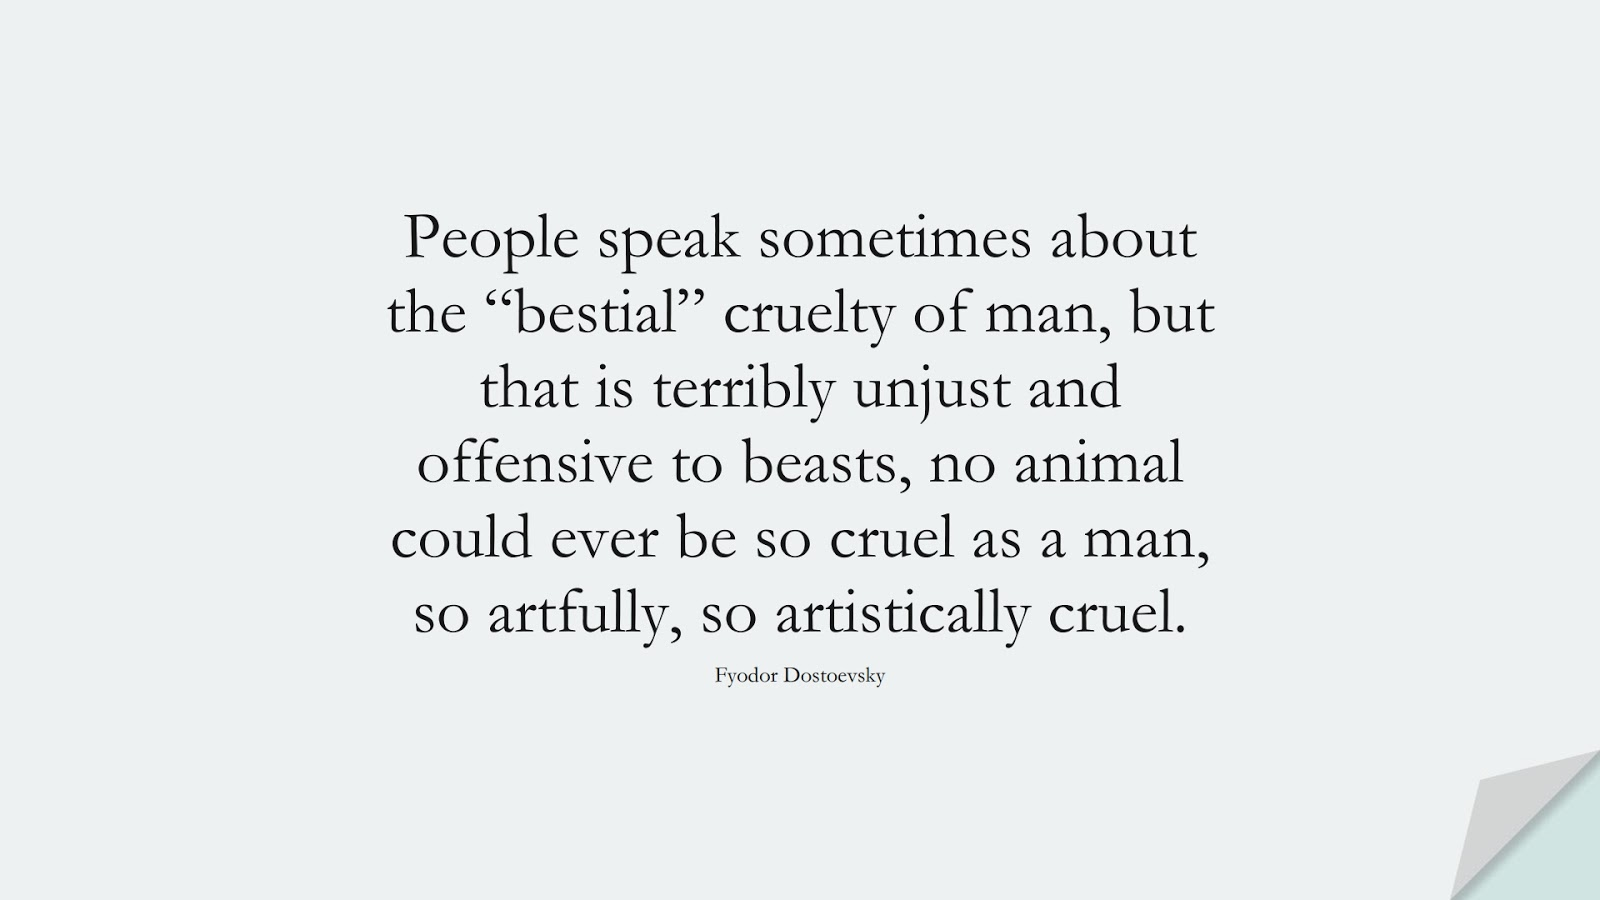 """People speak sometimes about the """"bestial"""" cruelty of man, but that is terribly unjust and offensive to beasts, no animal could ever be so cruel as a man, so artfully, so artistically cruel. (Fyodor Dostoevsky);  #HumanityQuotes"""